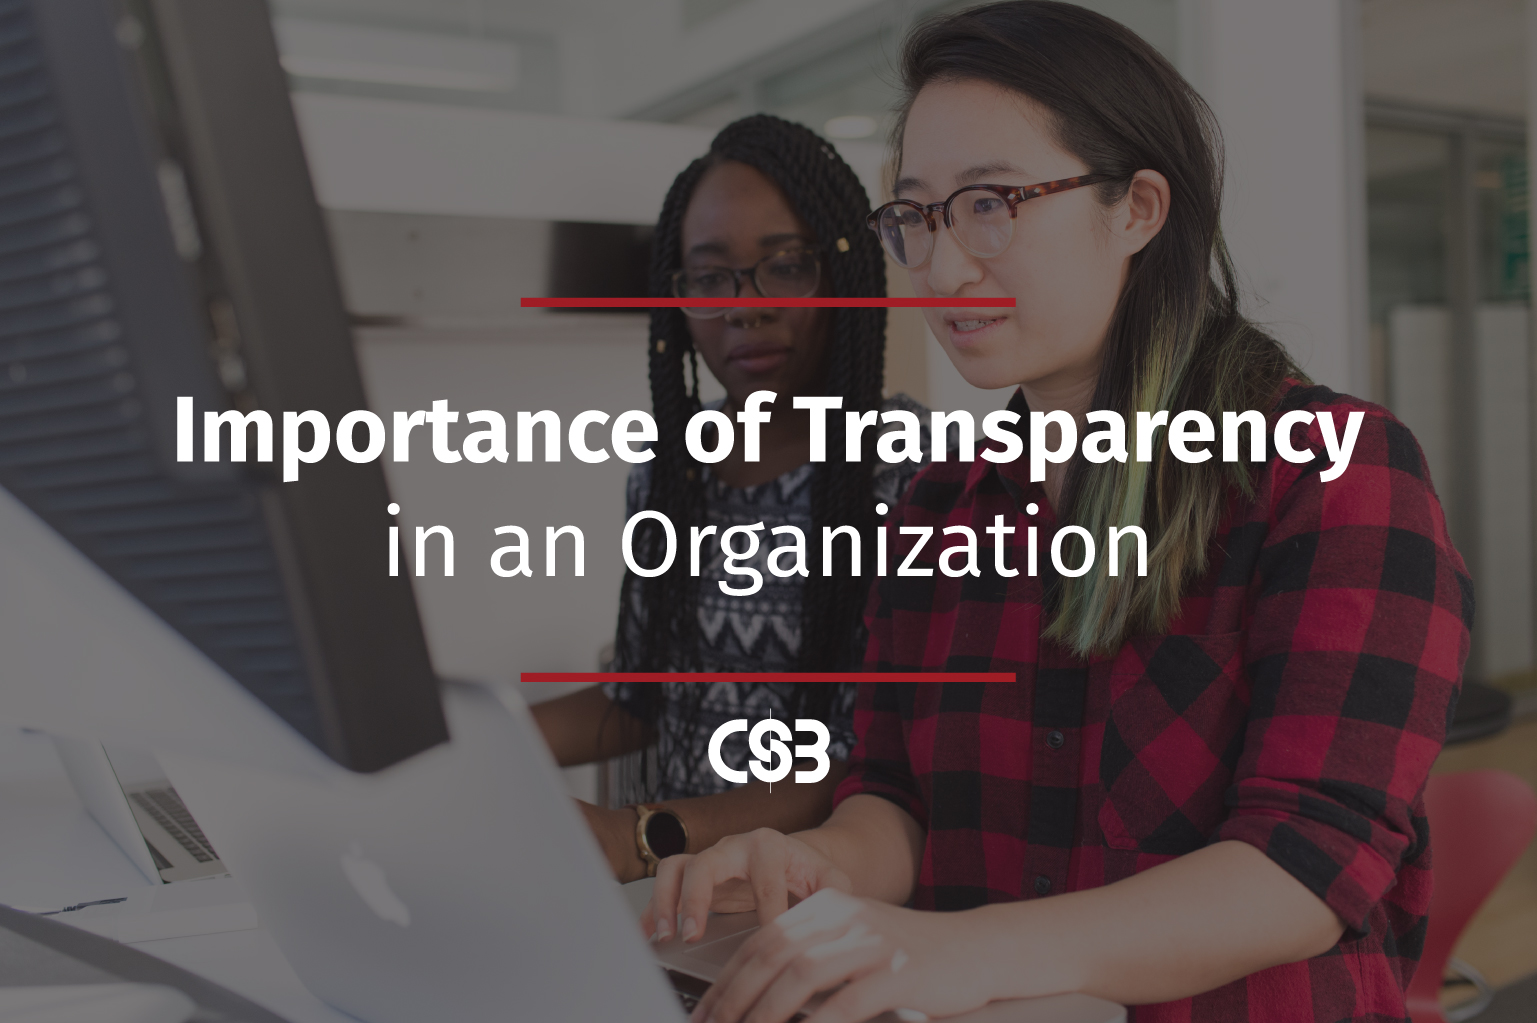 Importance-of-Transparency-in-an-Organization